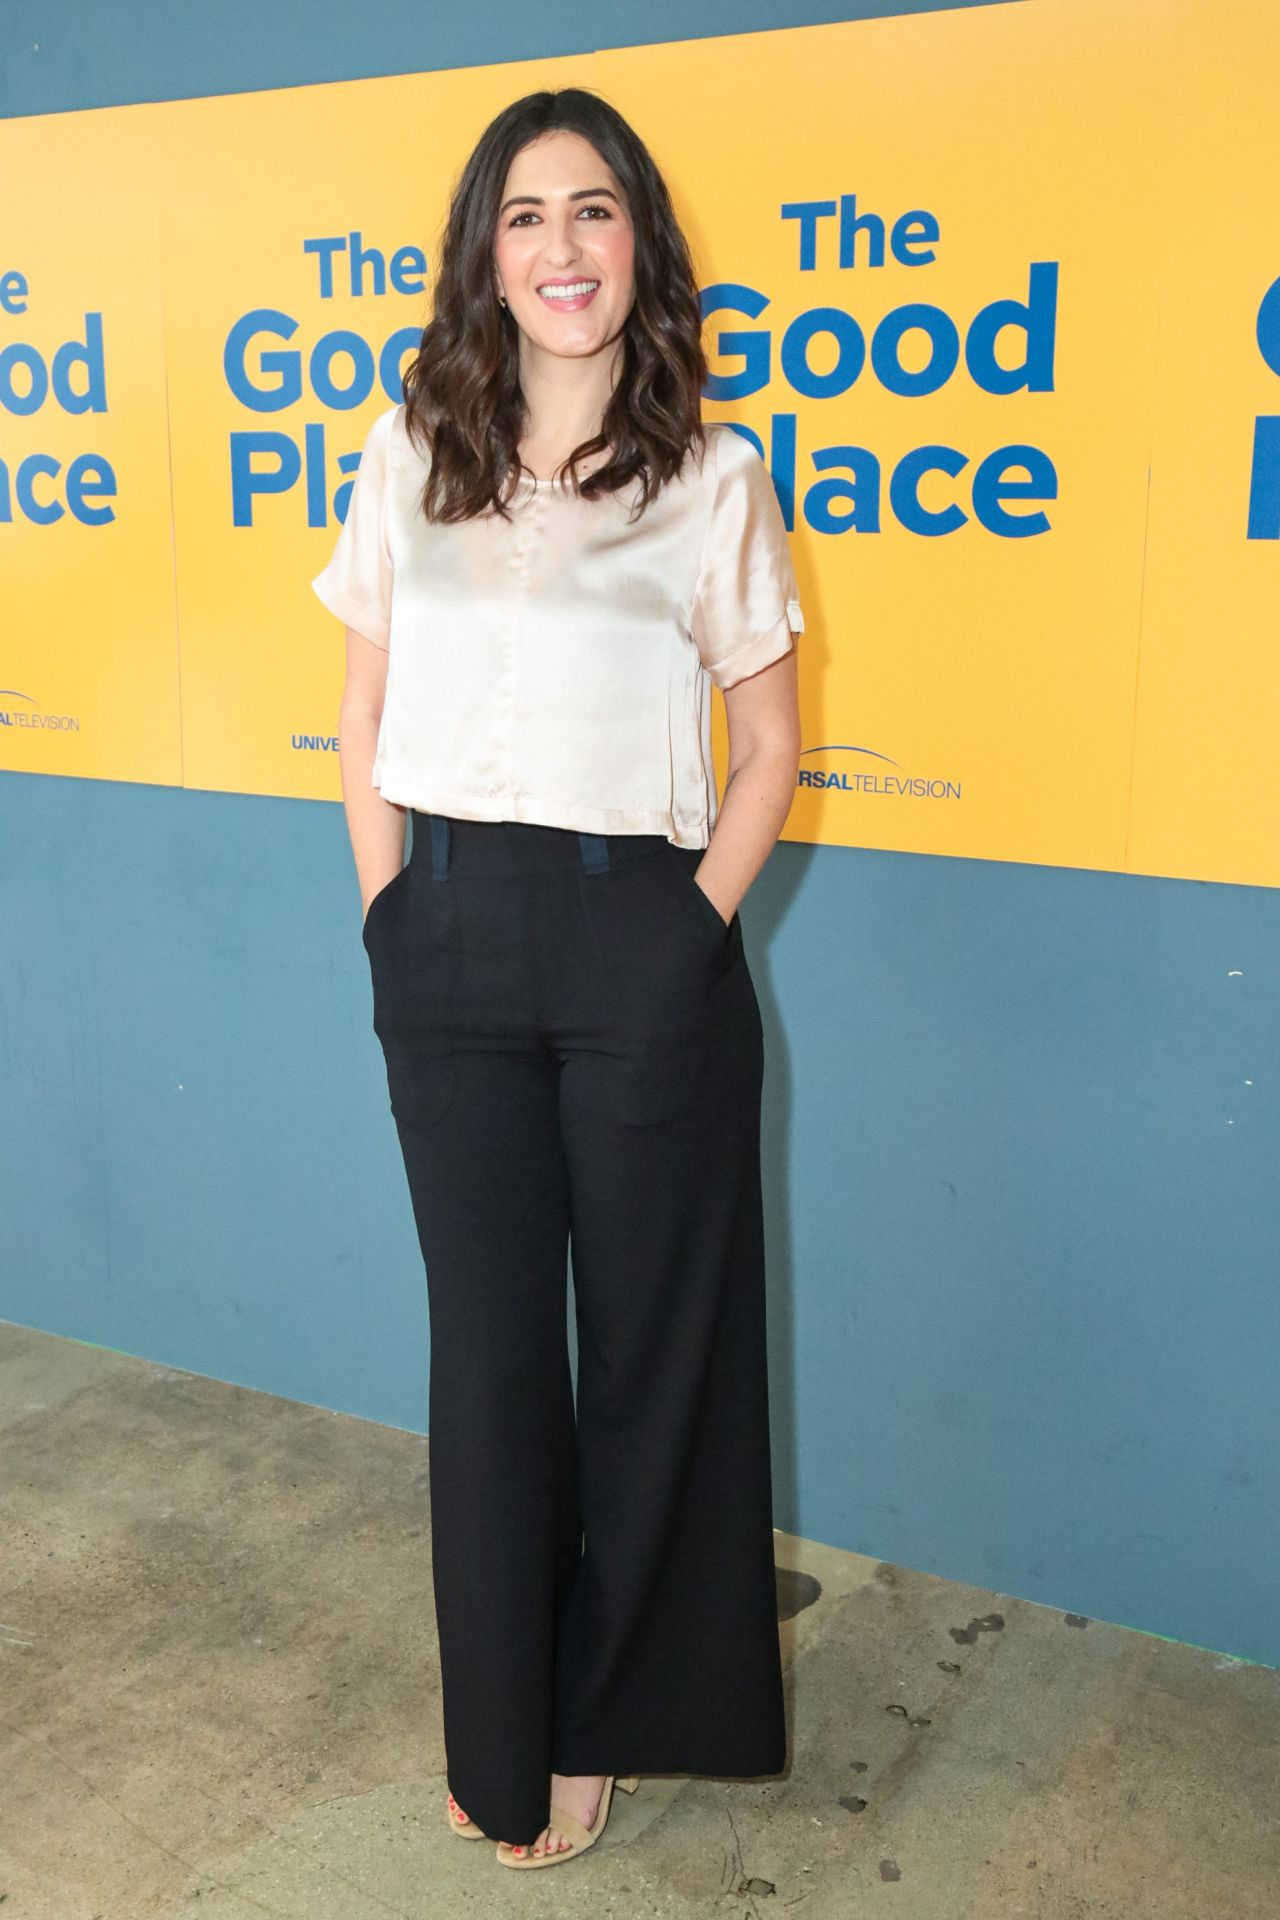 Darcy carden the good place fyc event in los angeles - 2019 year